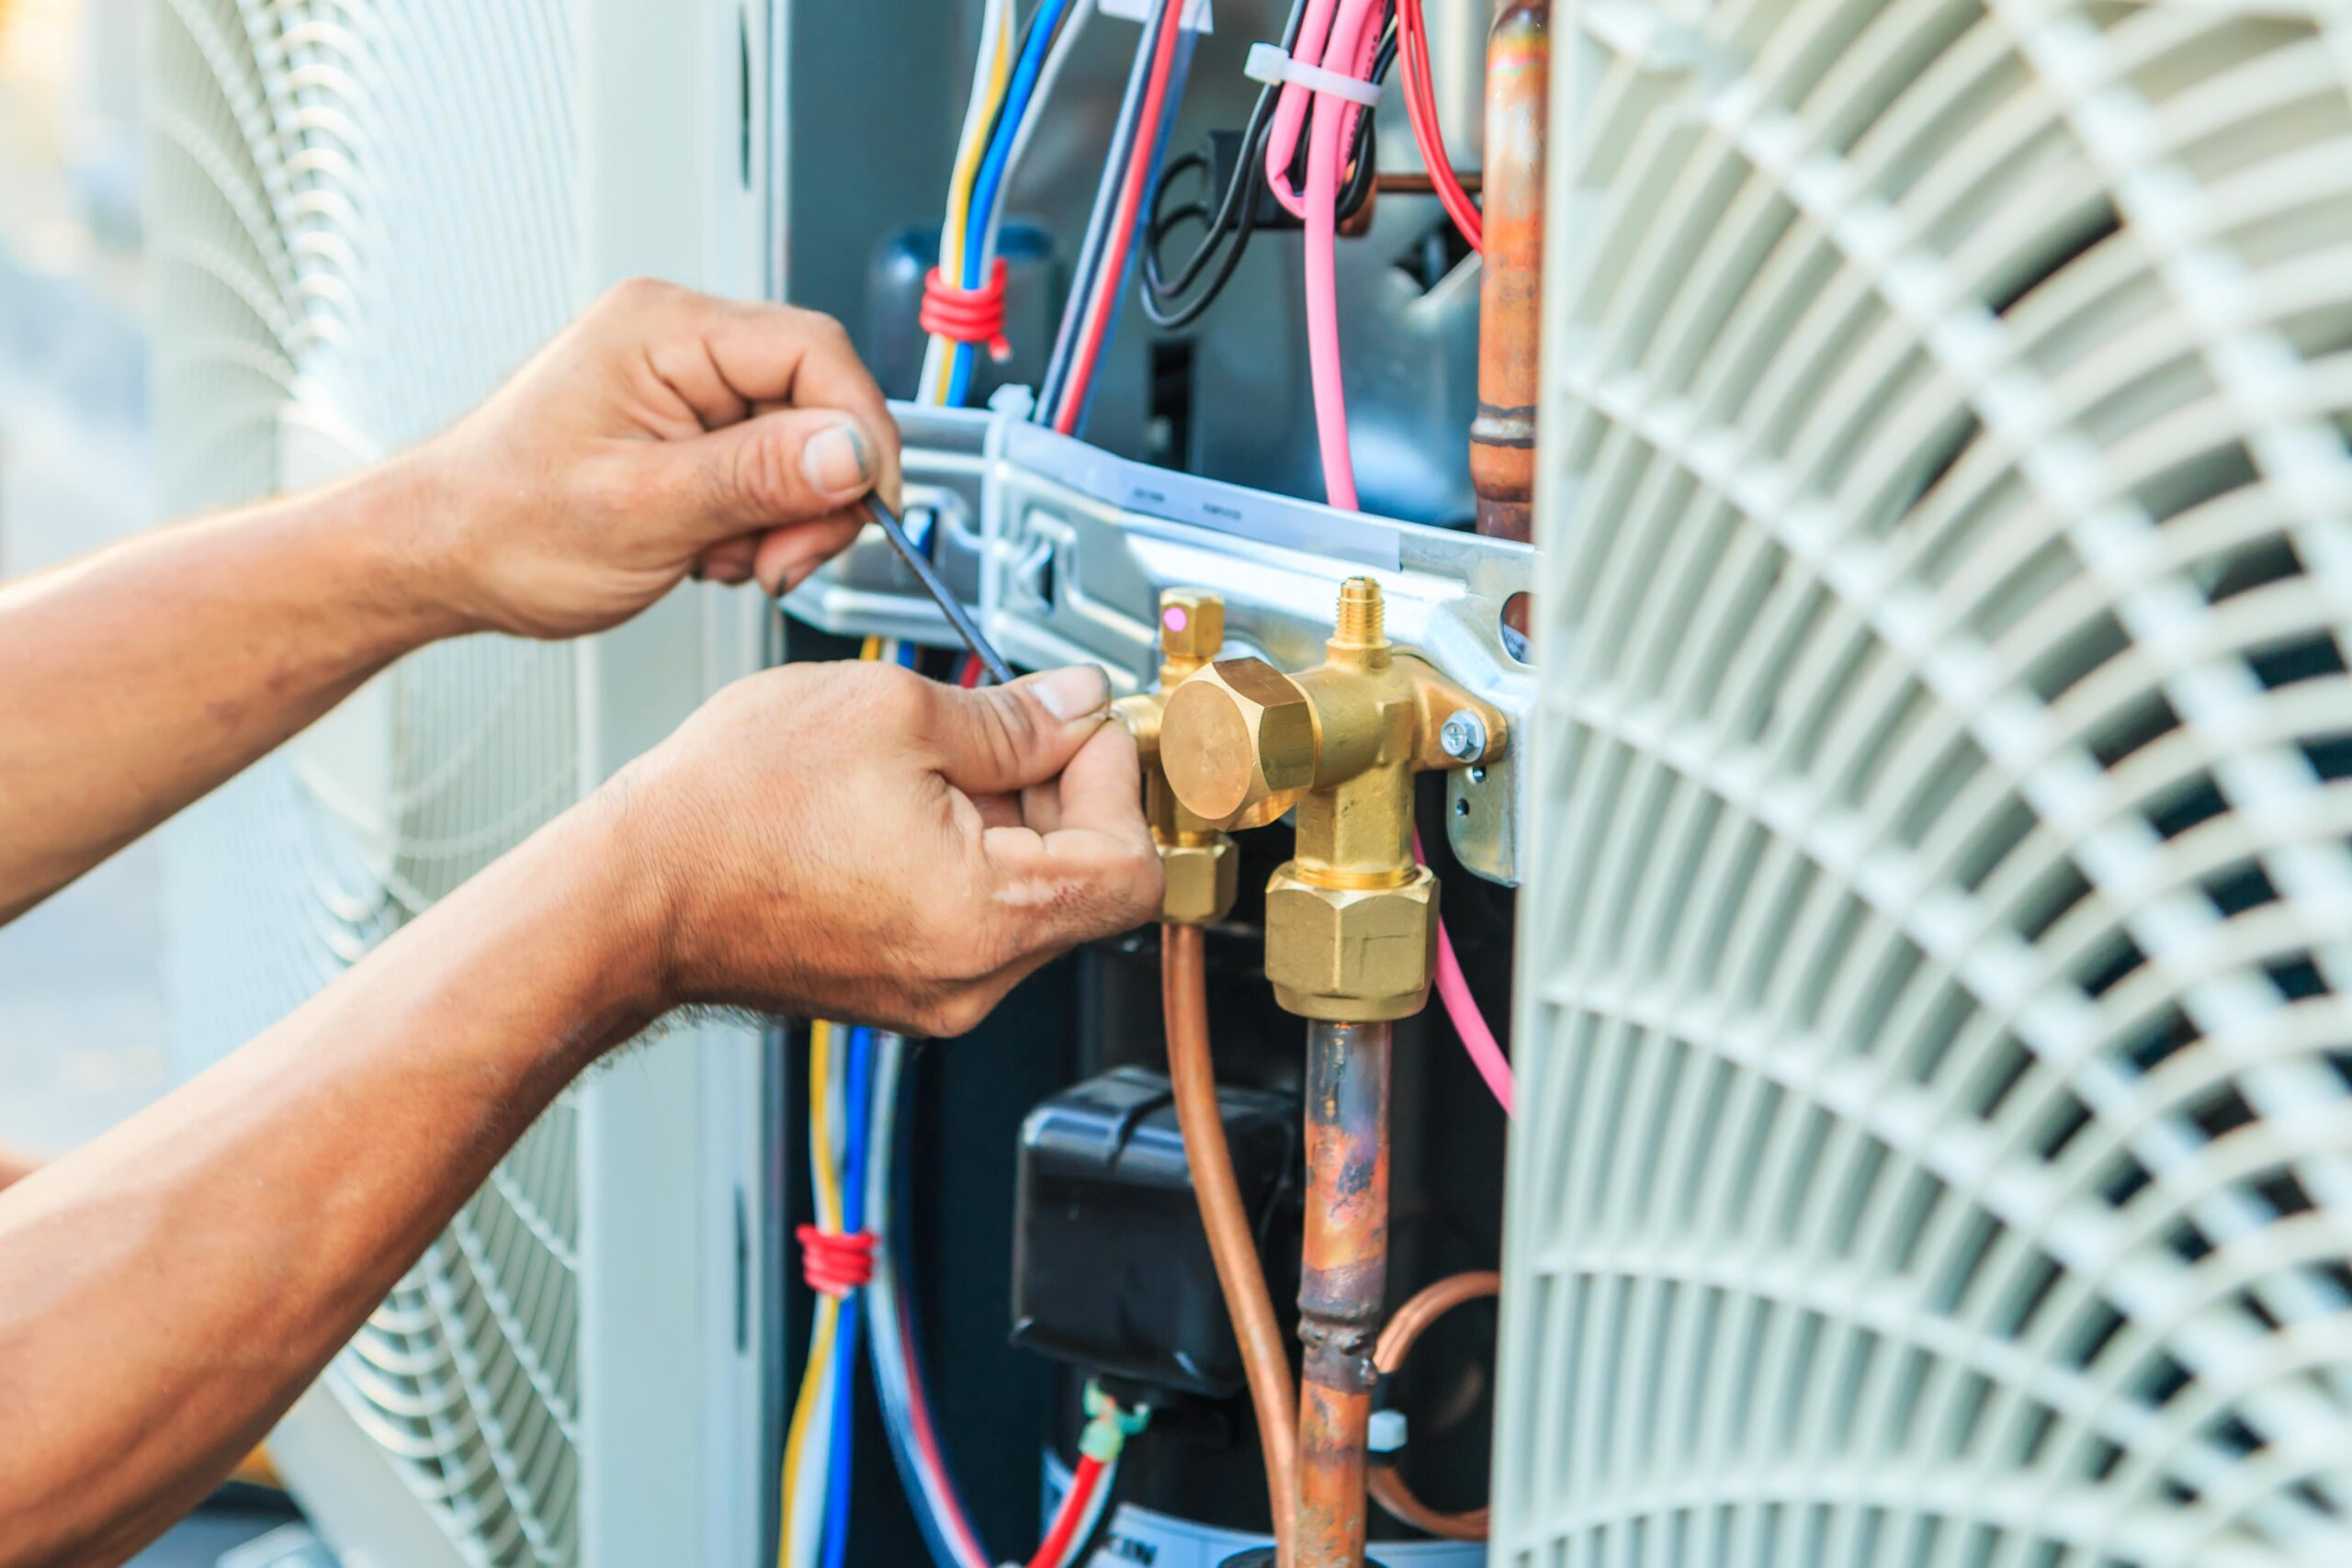 Installing air conditioners